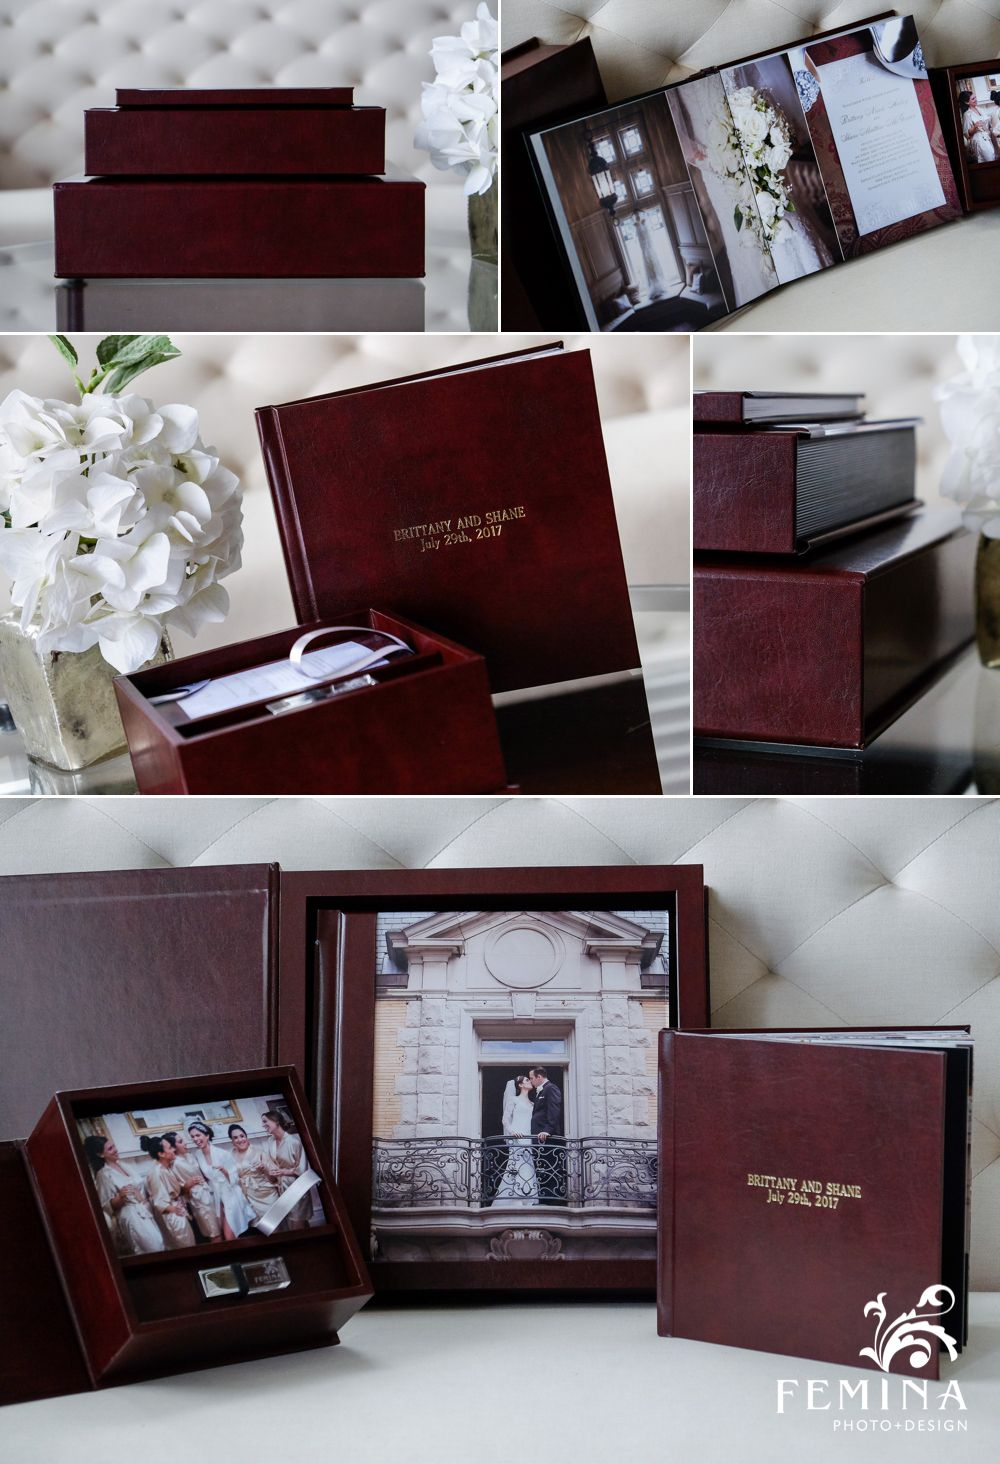 Eternal Collection Wedding Album 10x10 Wrapped In Madison Burgundy Leather With Matching Present Wedding Album Design Wedding Album Cover Wedding Album